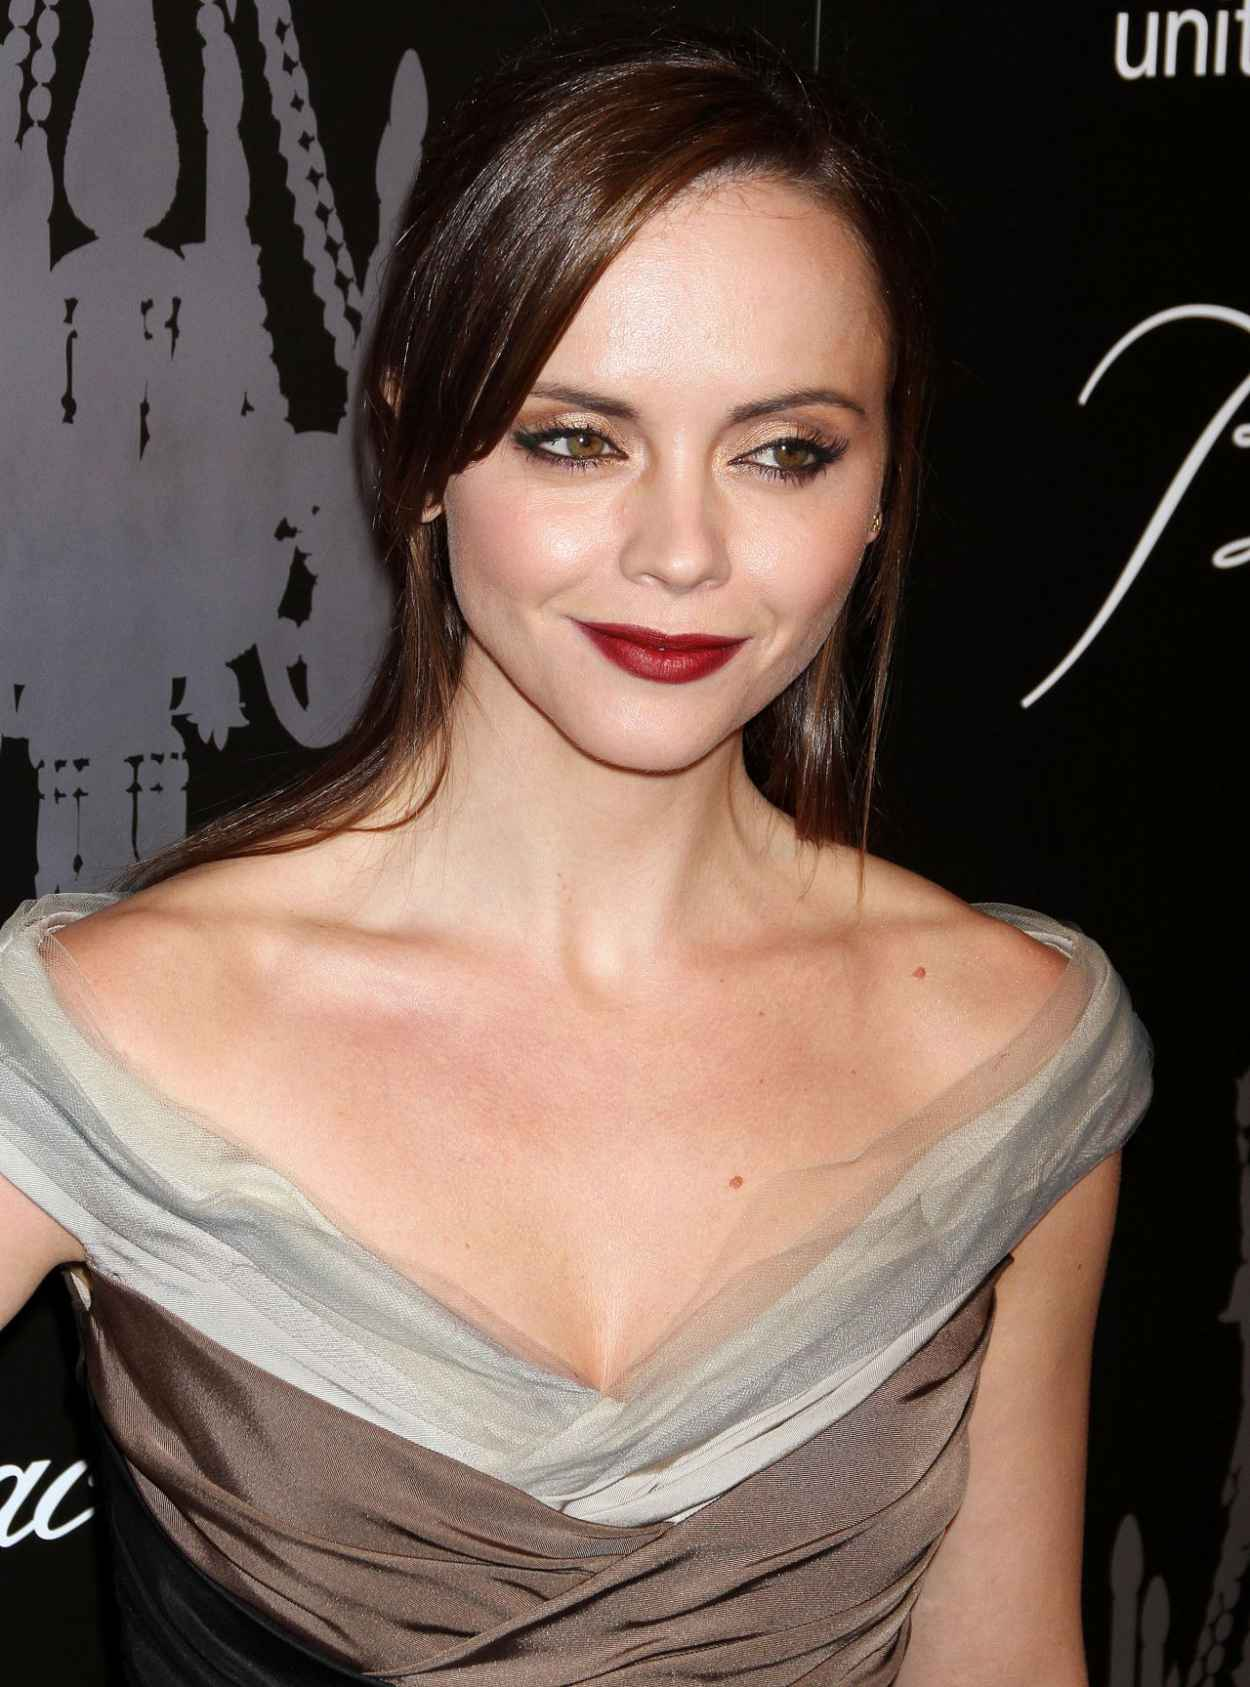 Christina Ricci Attends The 9th Annual UNICEF Snowflake Ball in New York City-1